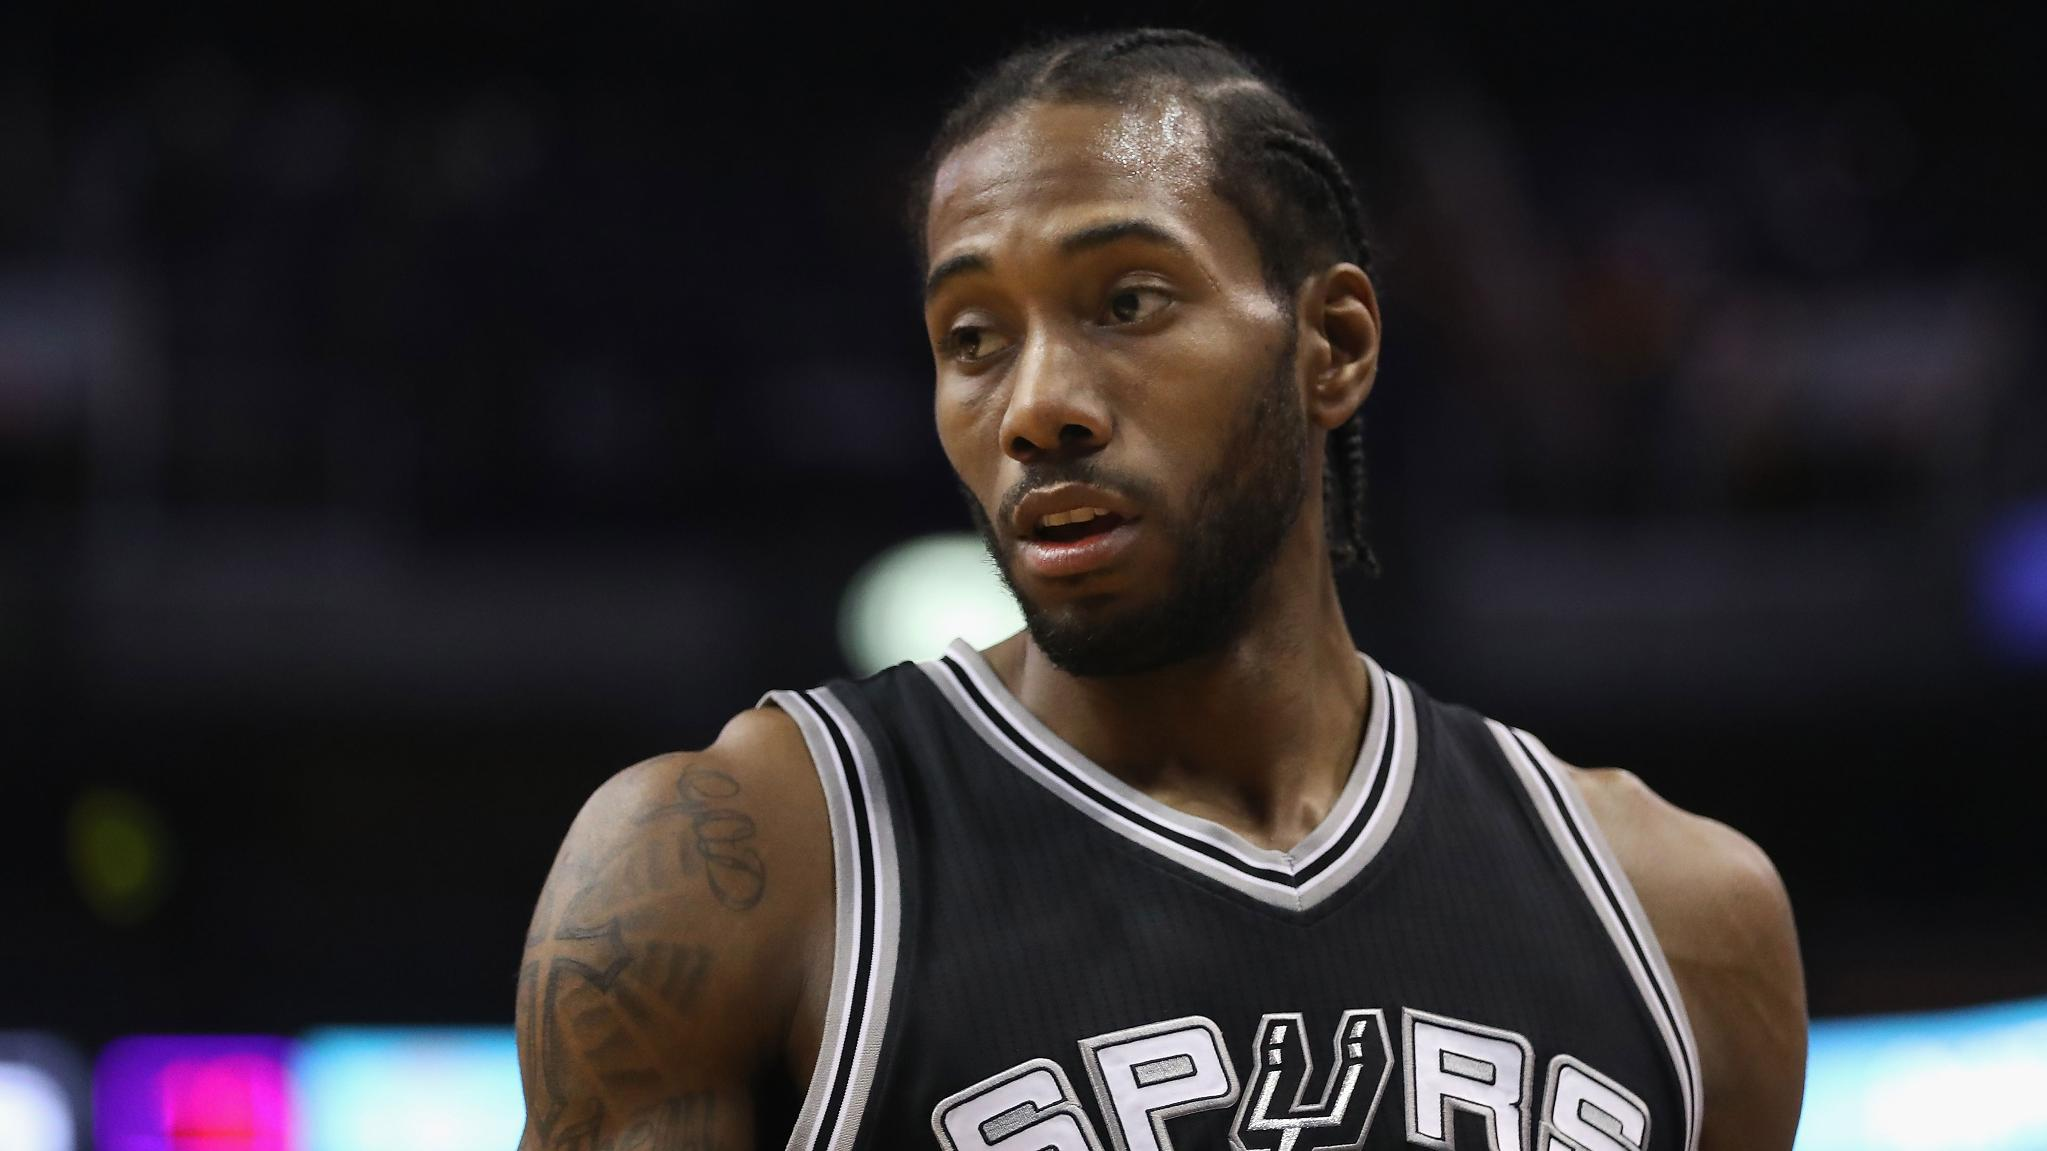 Report: Spurs won't trade Kawhi Leonard to Western Conference team https://t.co/tTSkZdgx6N https://t.co/gwSKk6eKcx